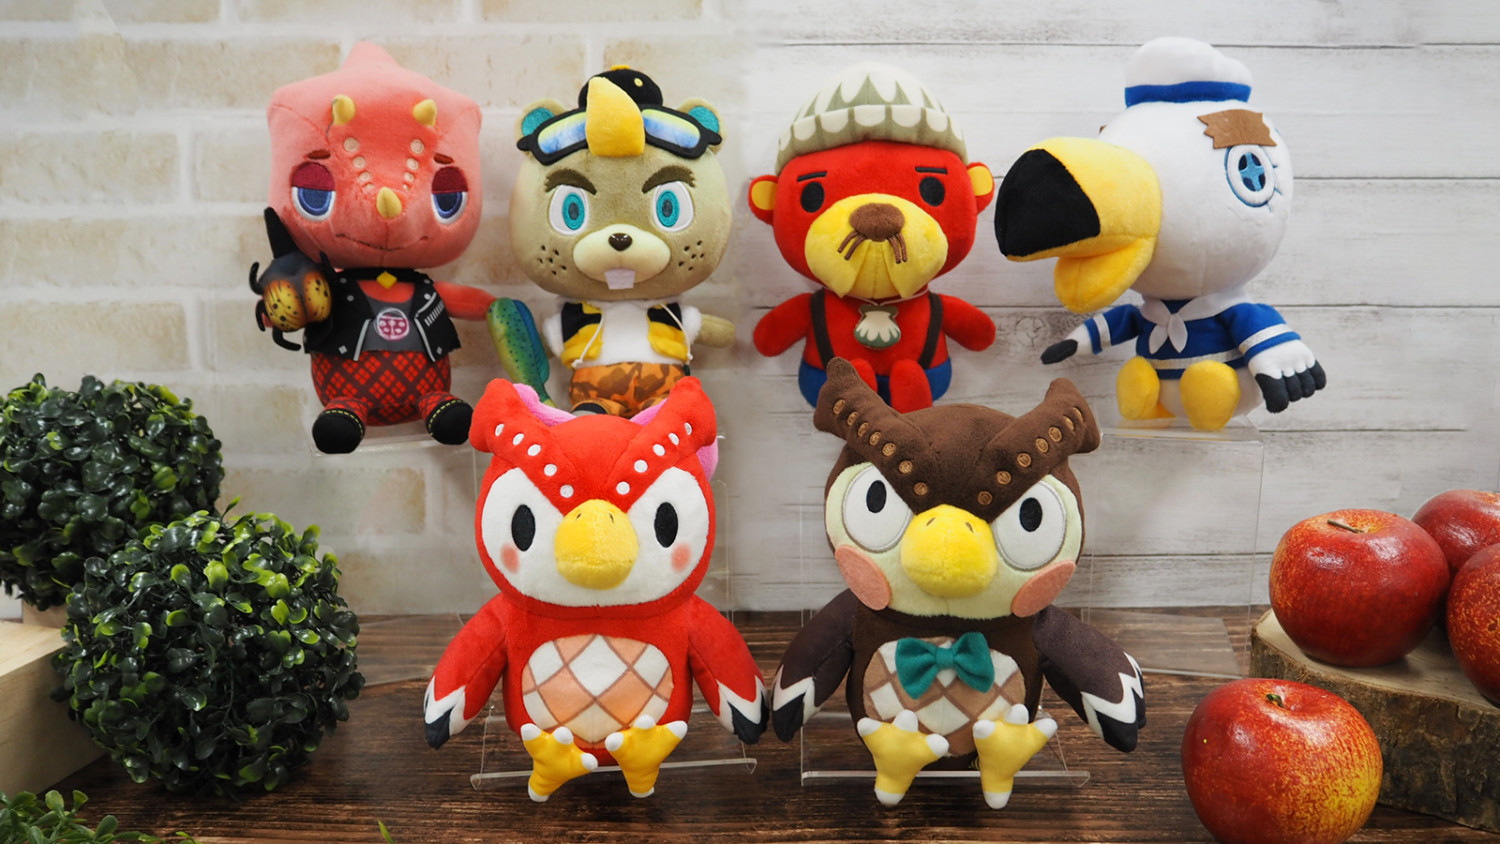 Animal Crossing All-Star Collection Plushies For Flick, C.J., Pascal, Gulliver, Celeste, And Blathers Announced